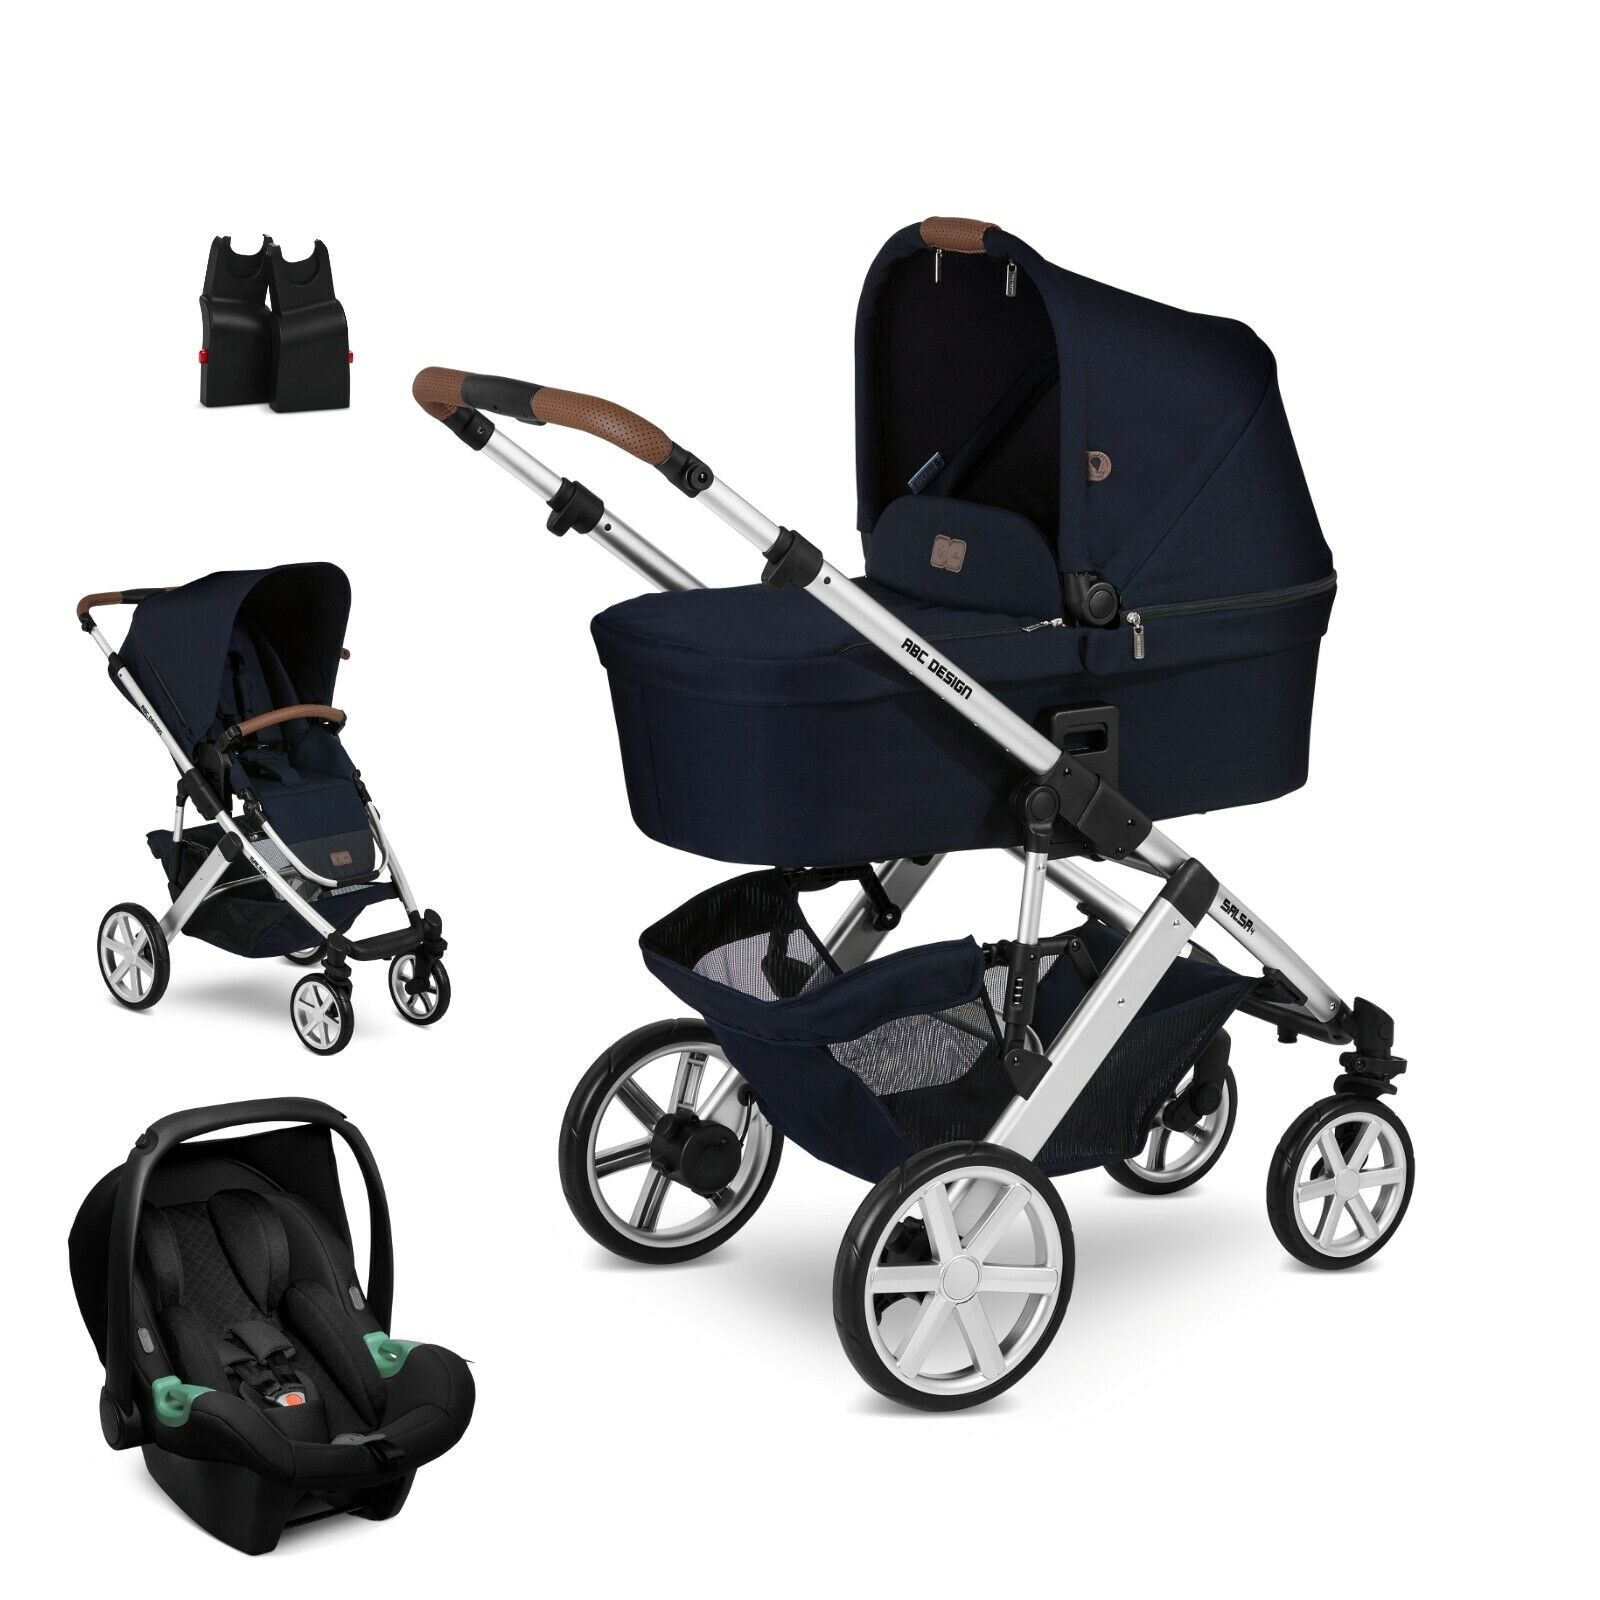 Kinderwagen Komplettset Ebay Abc Design Salsa 4 Shadow Kinderwagen 3in1 Set 2020